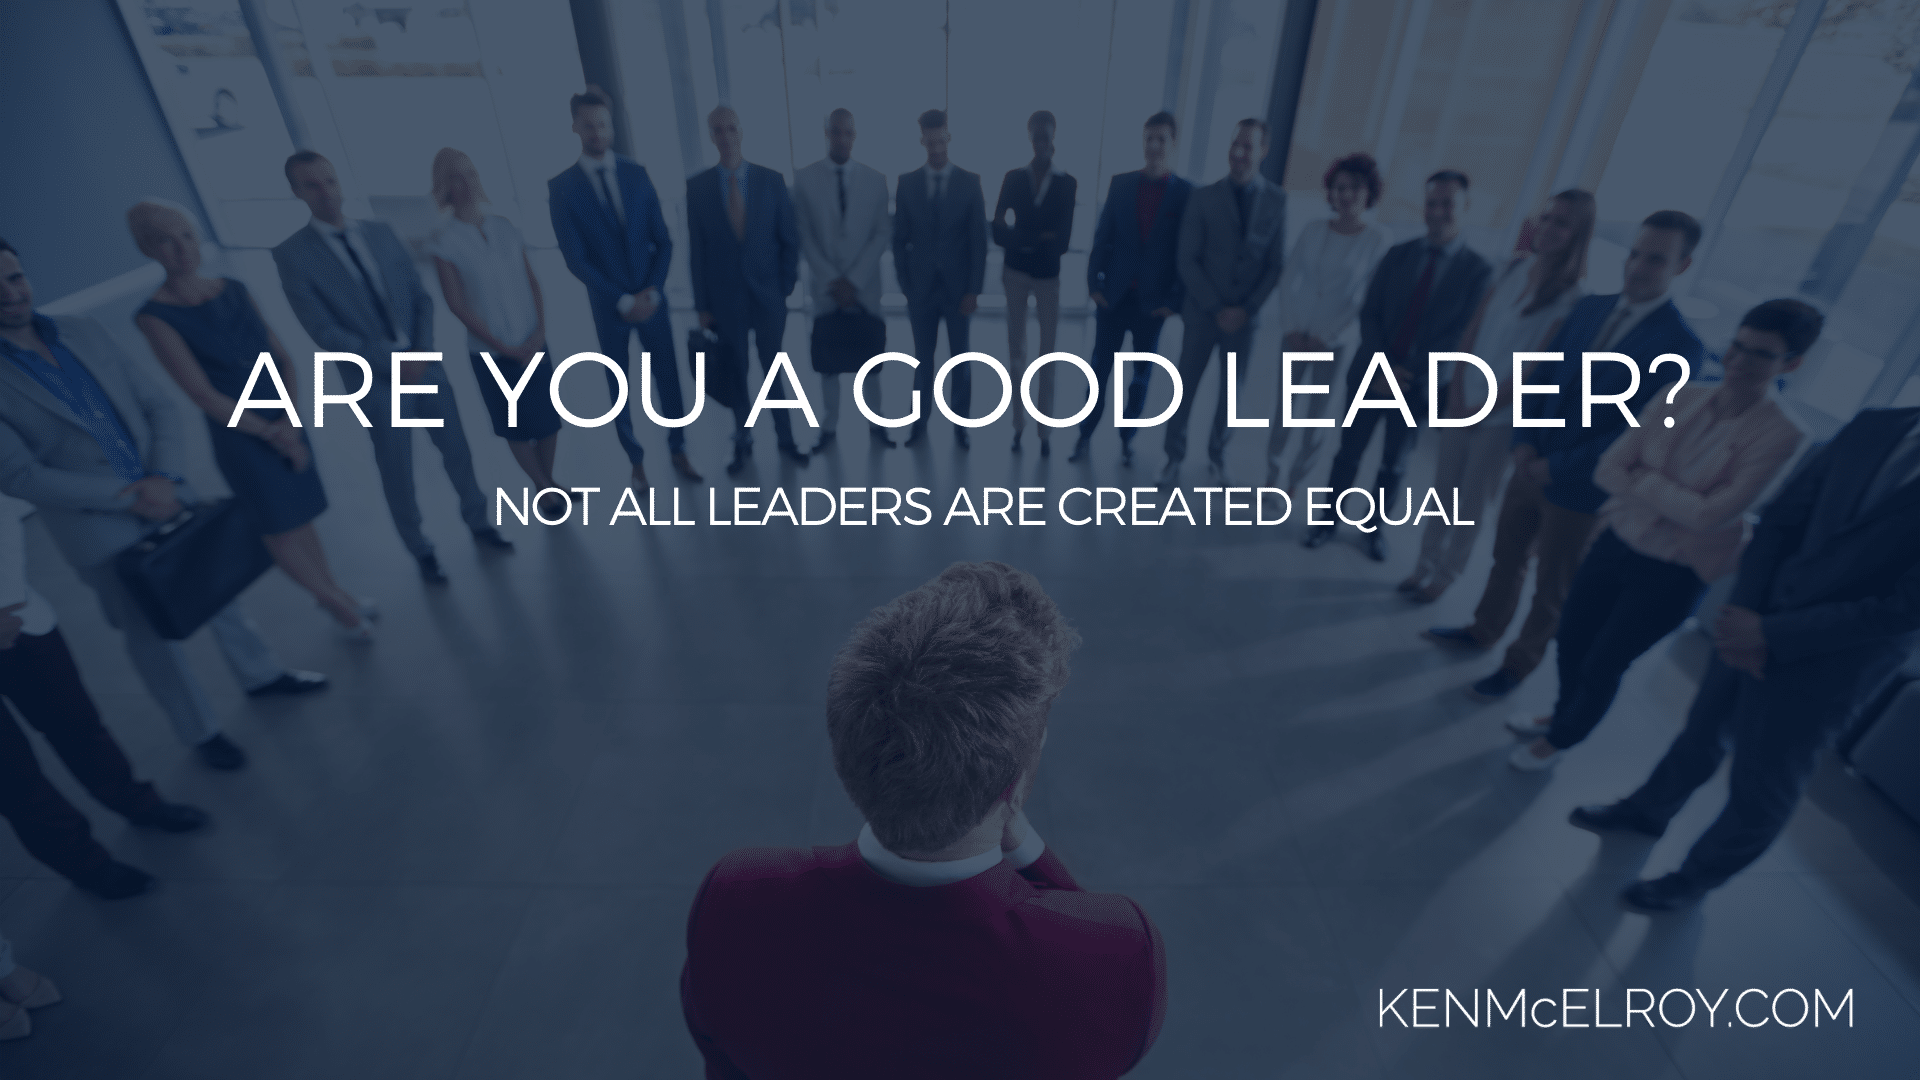 Not all leaders are created equal | Ken McElroy Image